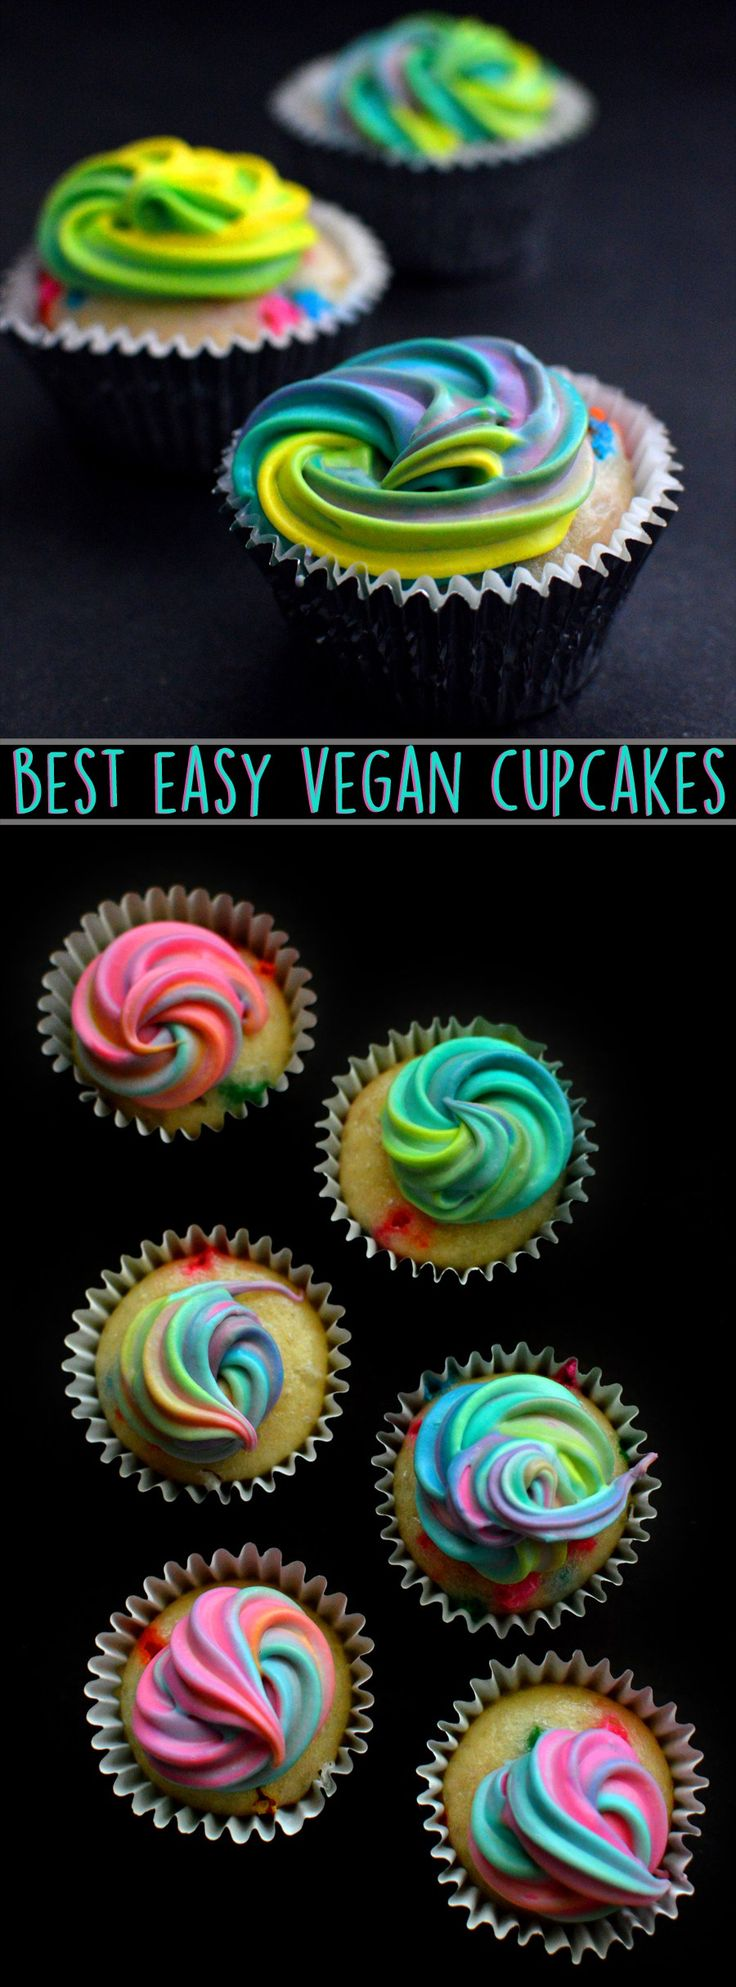 Best Vegan Cupcake + Cake Recipe - Easy! Unicorn Rainbow Funfetti Vanilla - Eggless - Without Eggs - Dairy Free - Birthday Party - Rich Bitch Cooking Blog